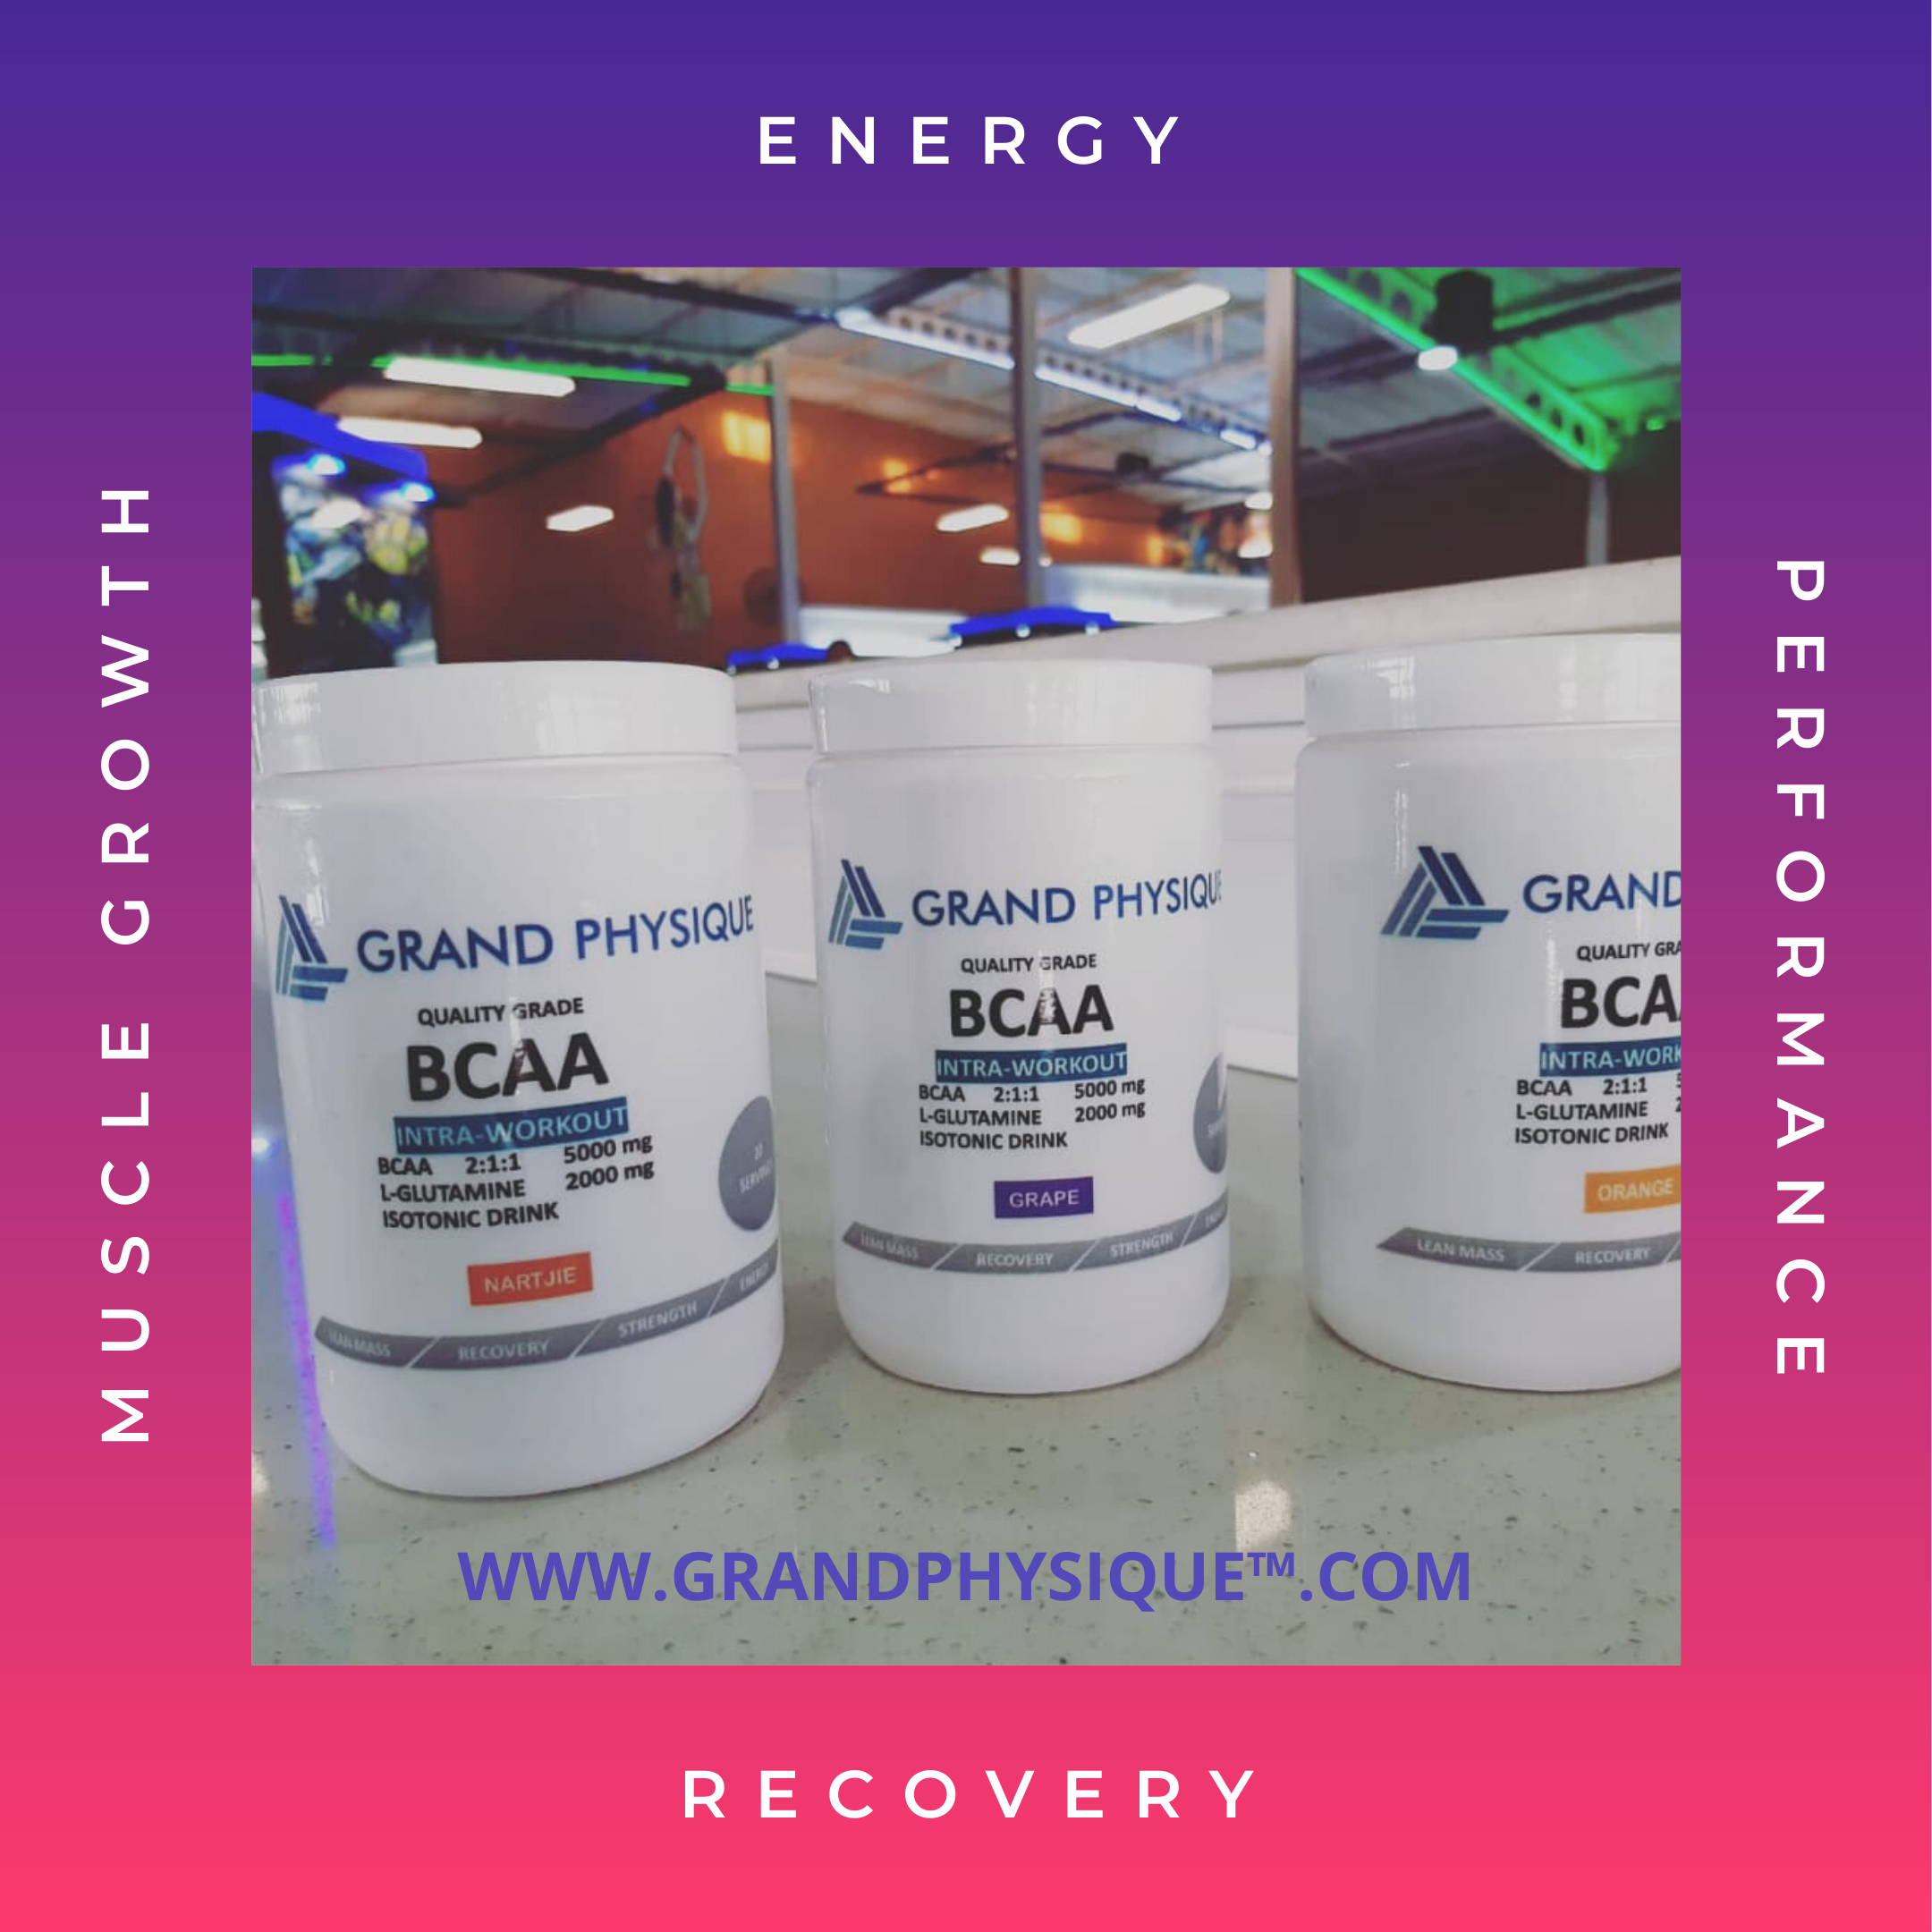 bcaa intra-workout with glutamine